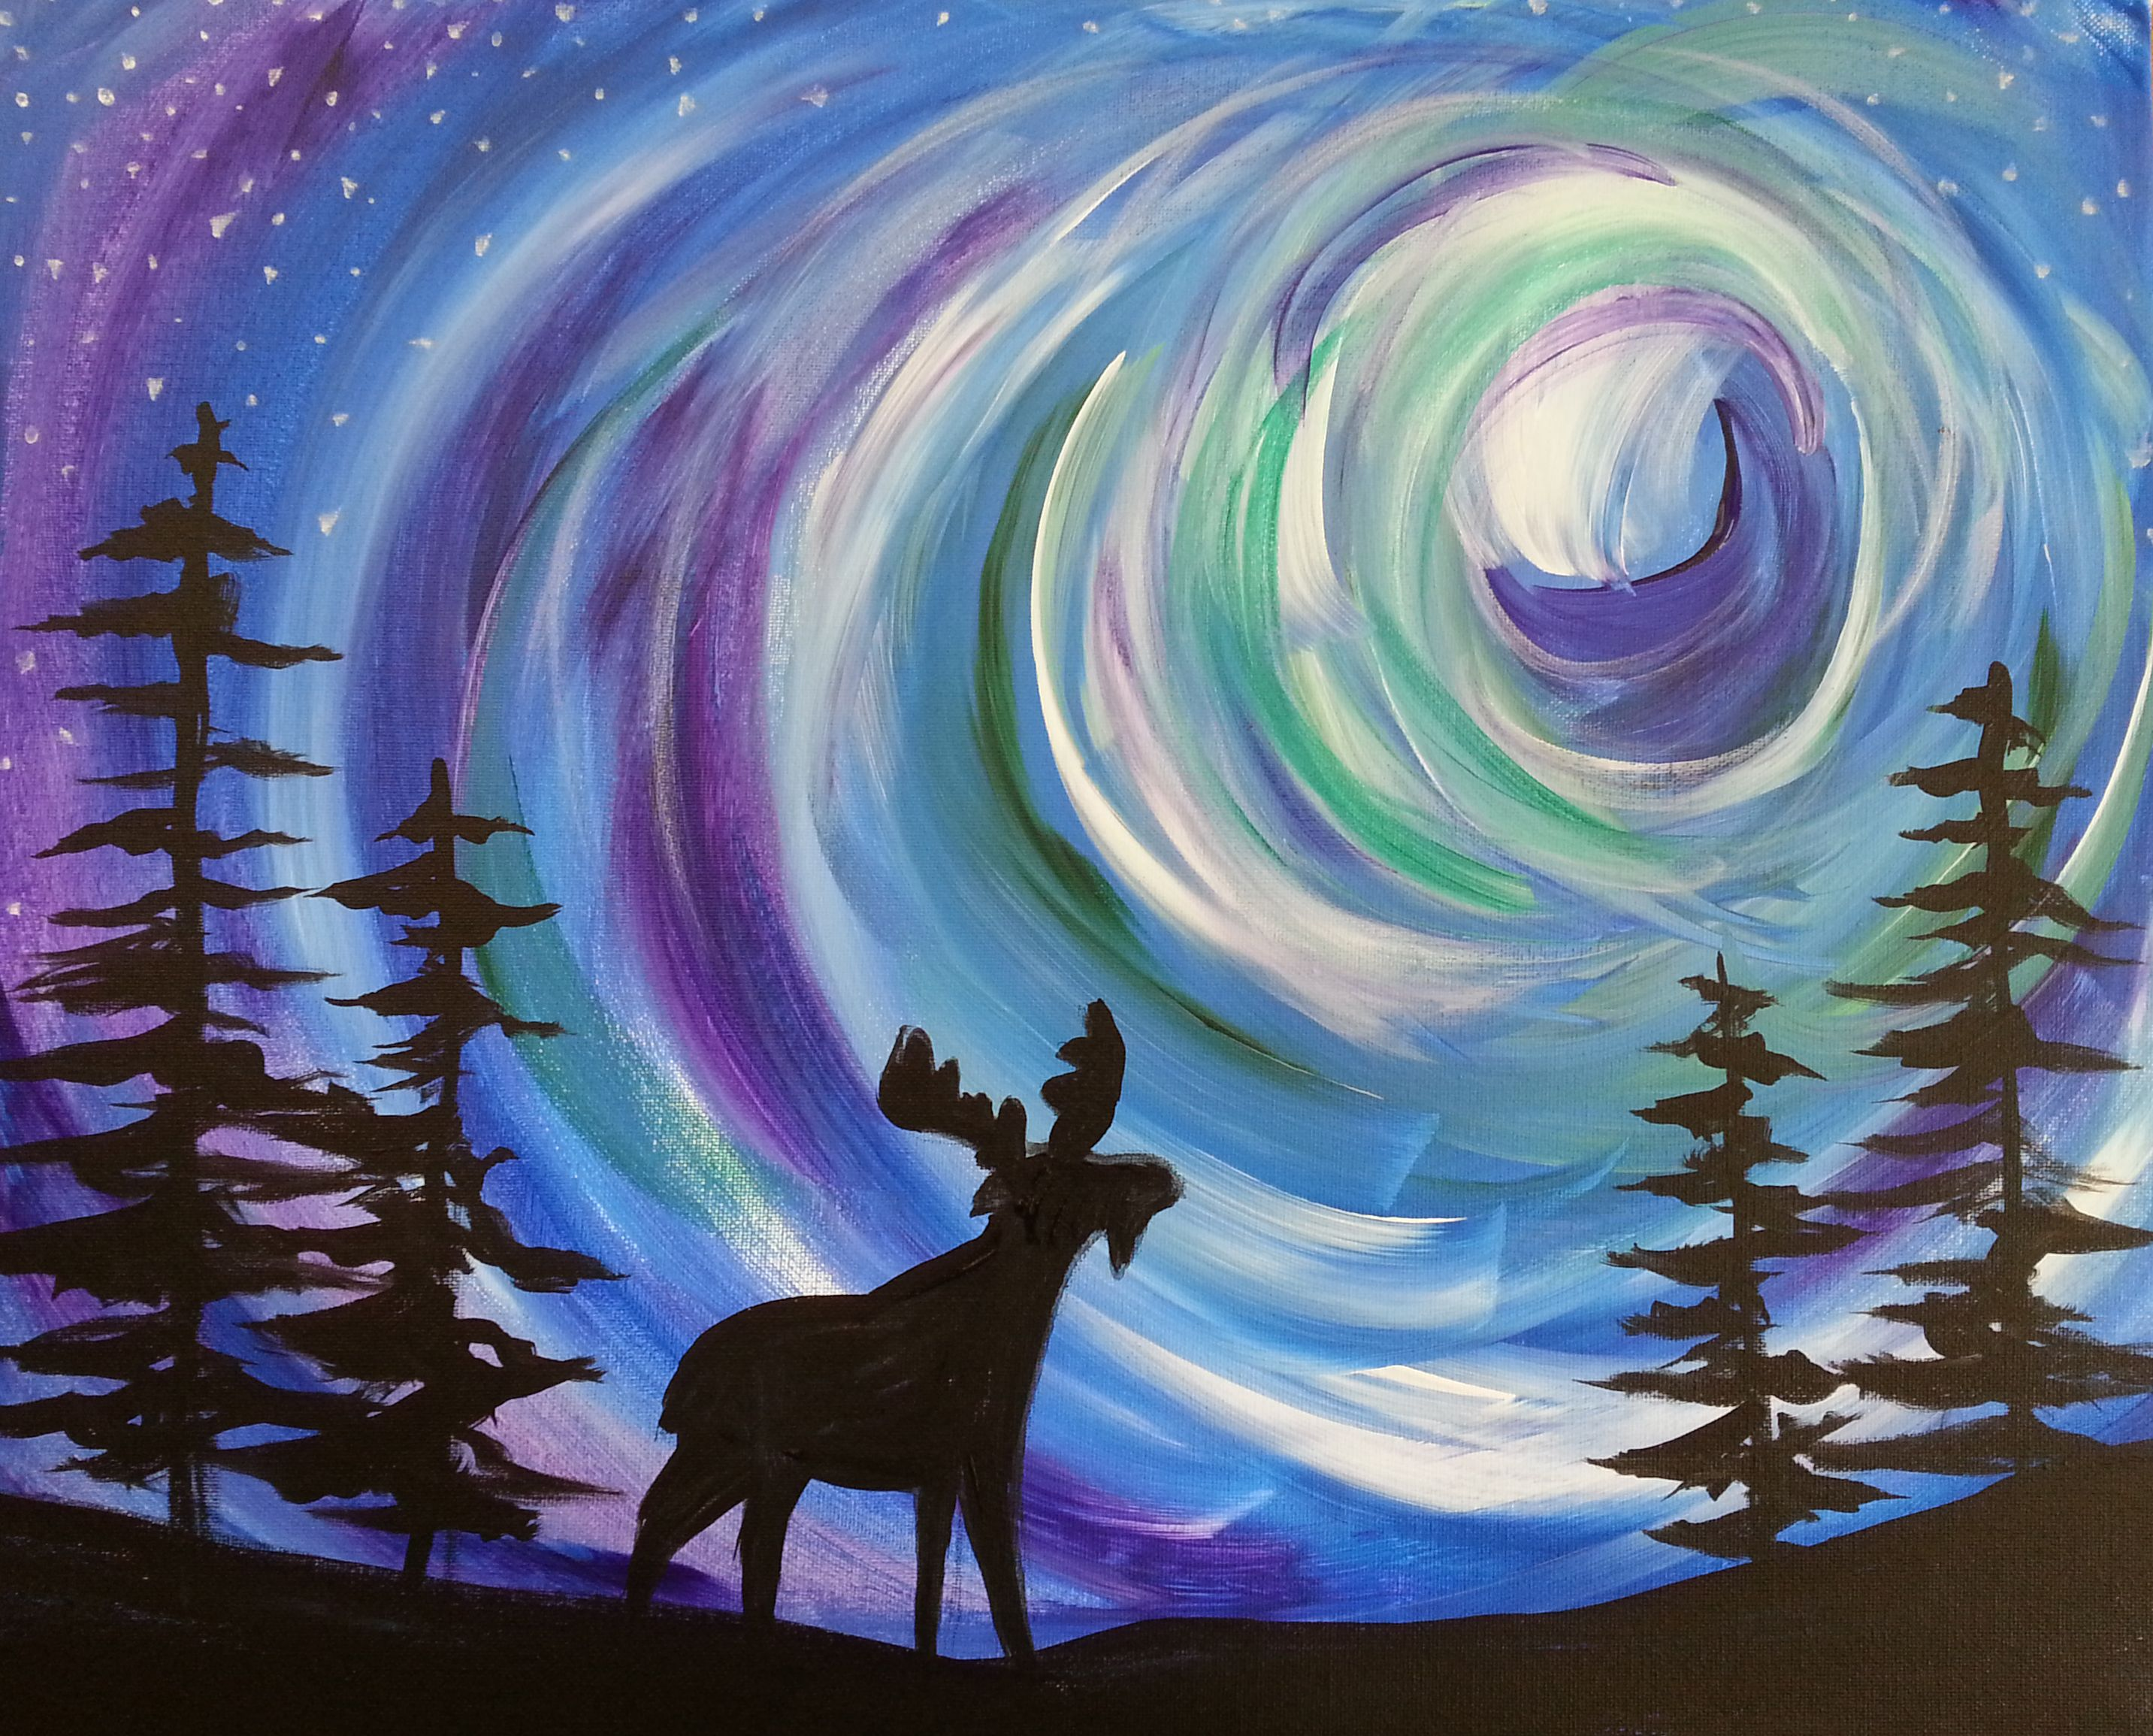 Northern Lights Painting Google Search Painting Ideas